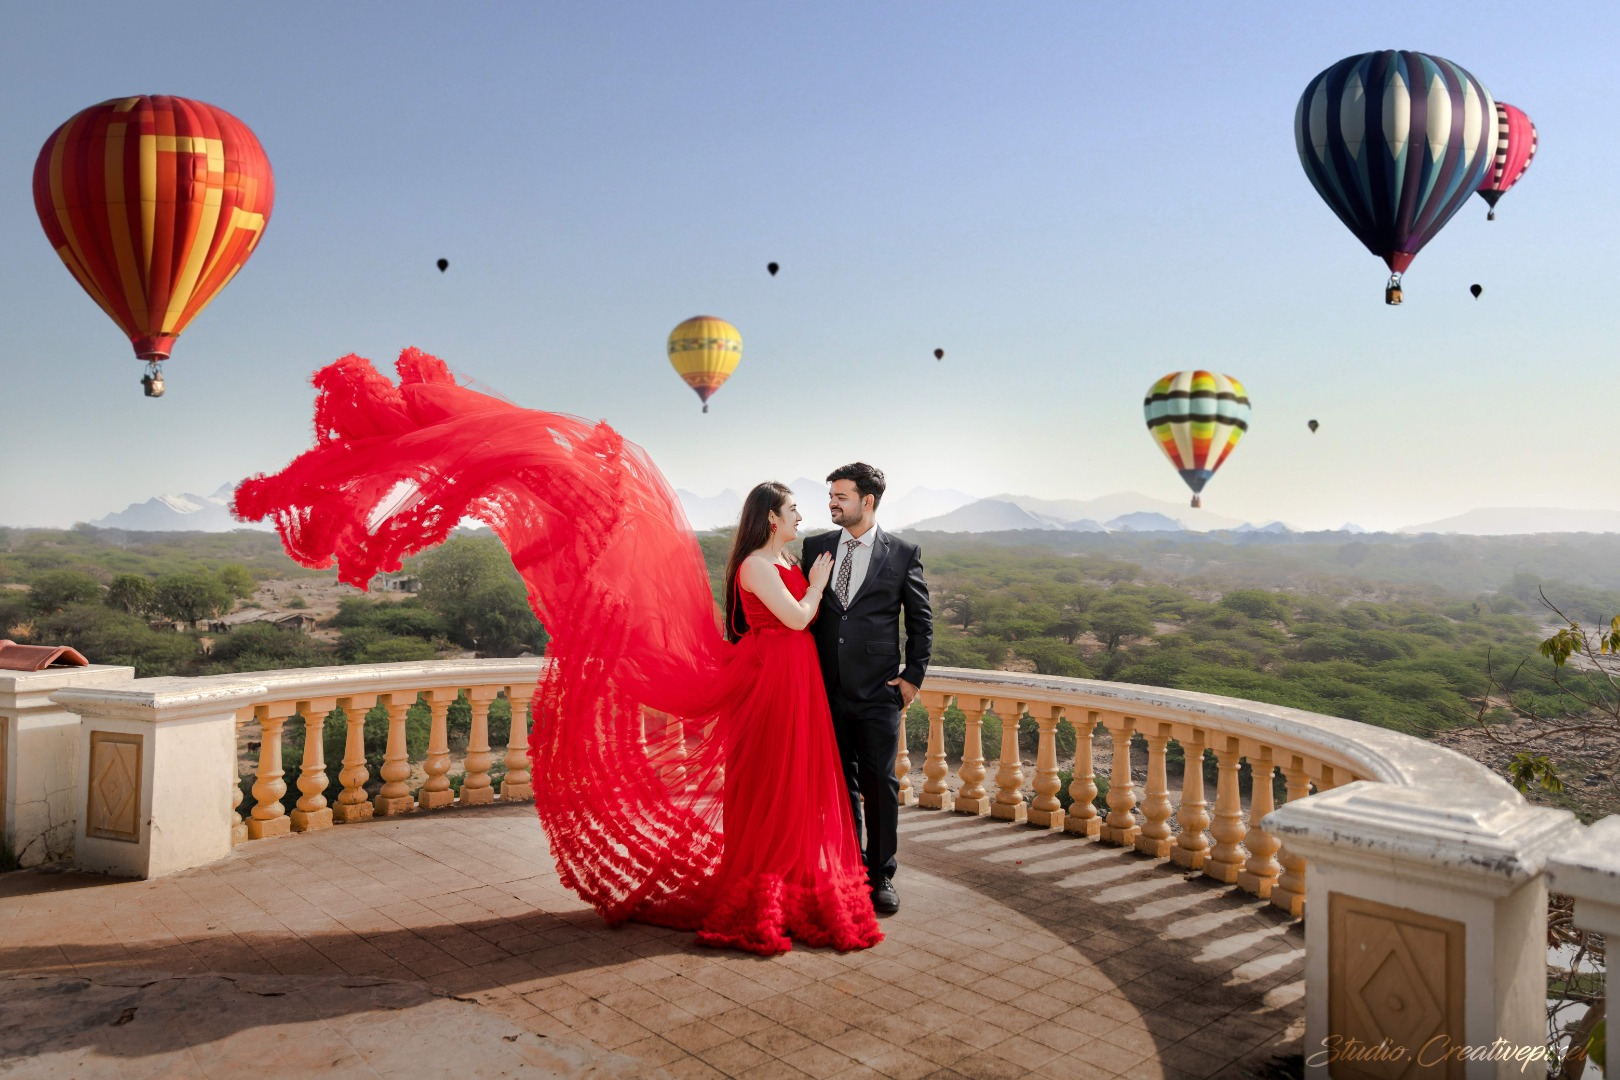 pre wedding shoot with hot air balloons in the background